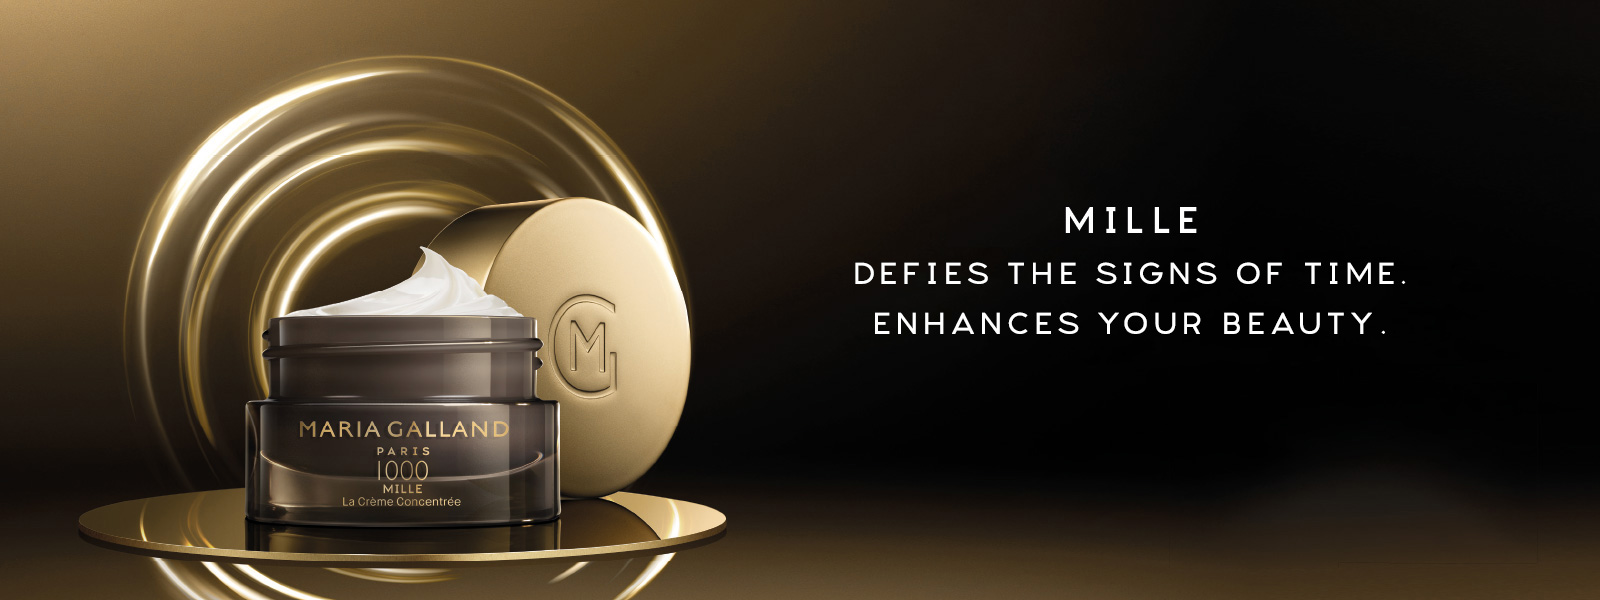 Mille 6 Defies the signs of time. Enhances your beauty.